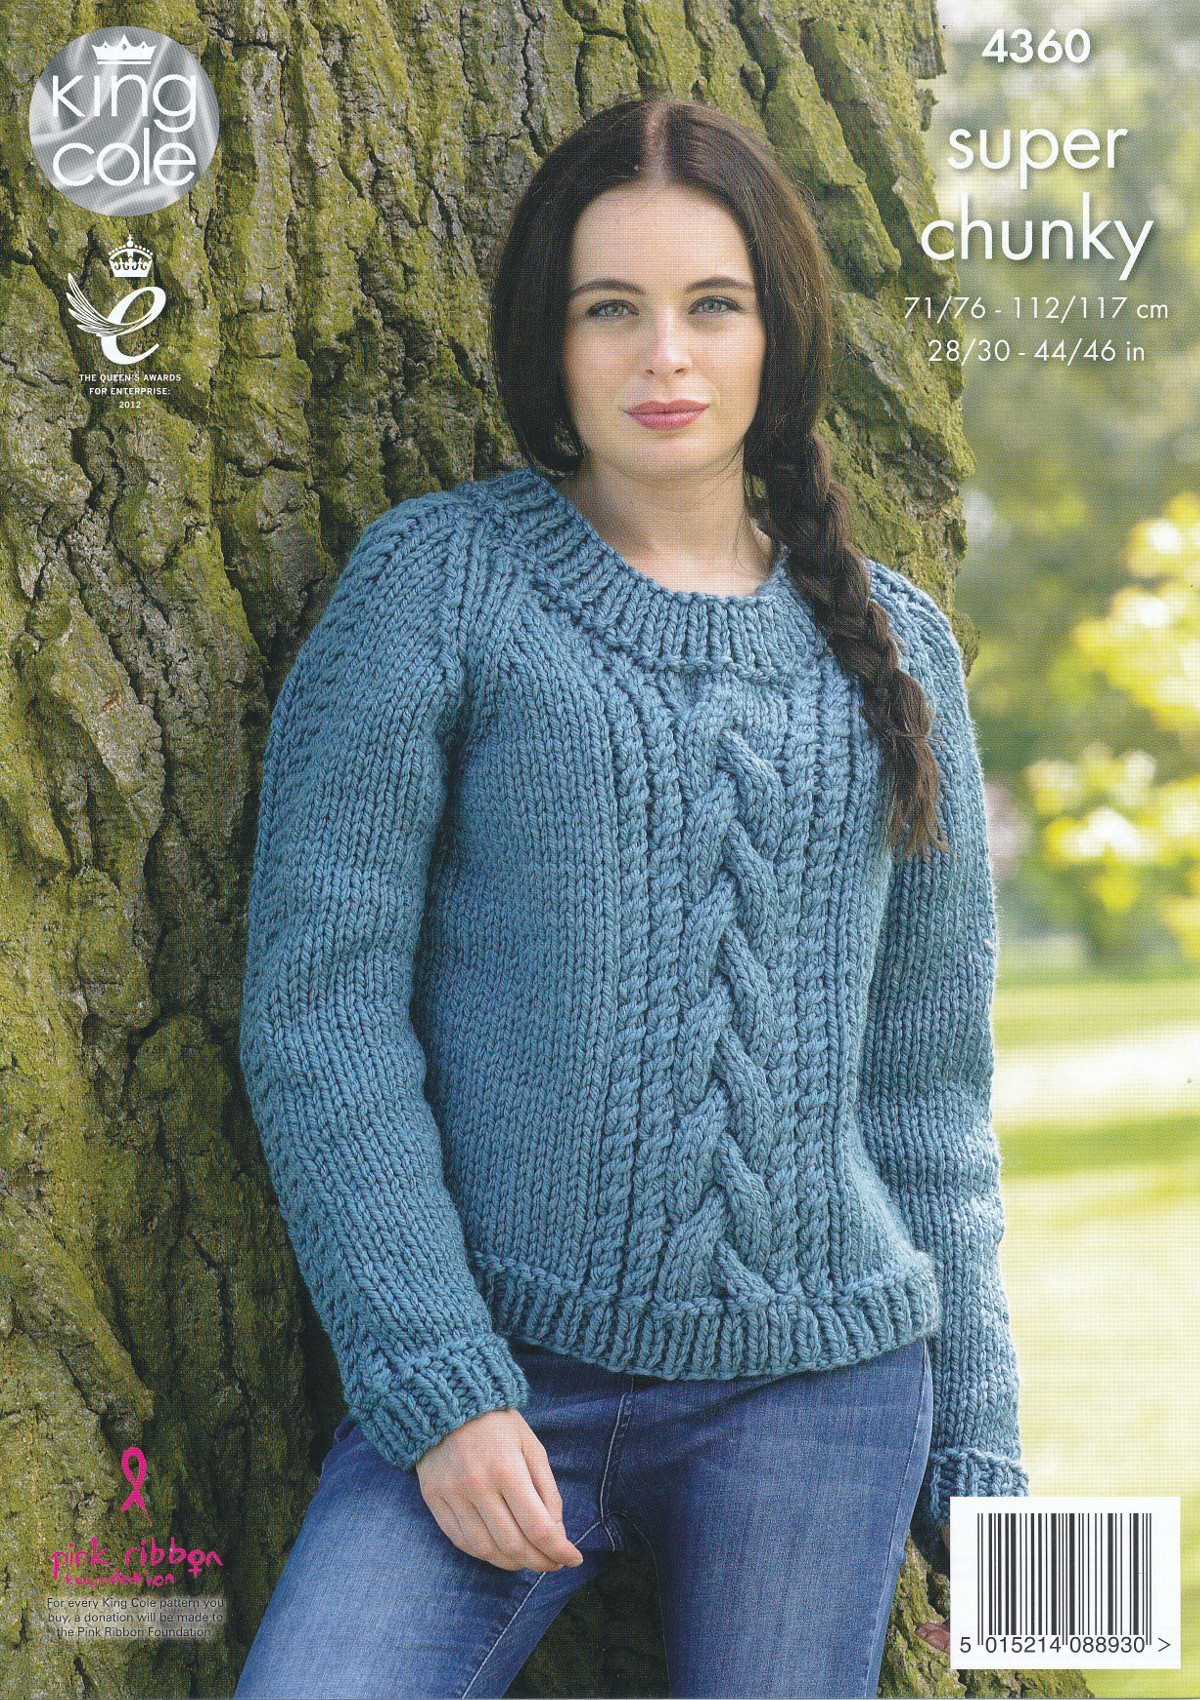 Elegant La S Super Chunky Knitting Pattern King Cole Cable Knit Cable Knit Sweater Pattern Of Luxury Easy Sweater Knitting Patterns Cable Knit Sweater Pattern